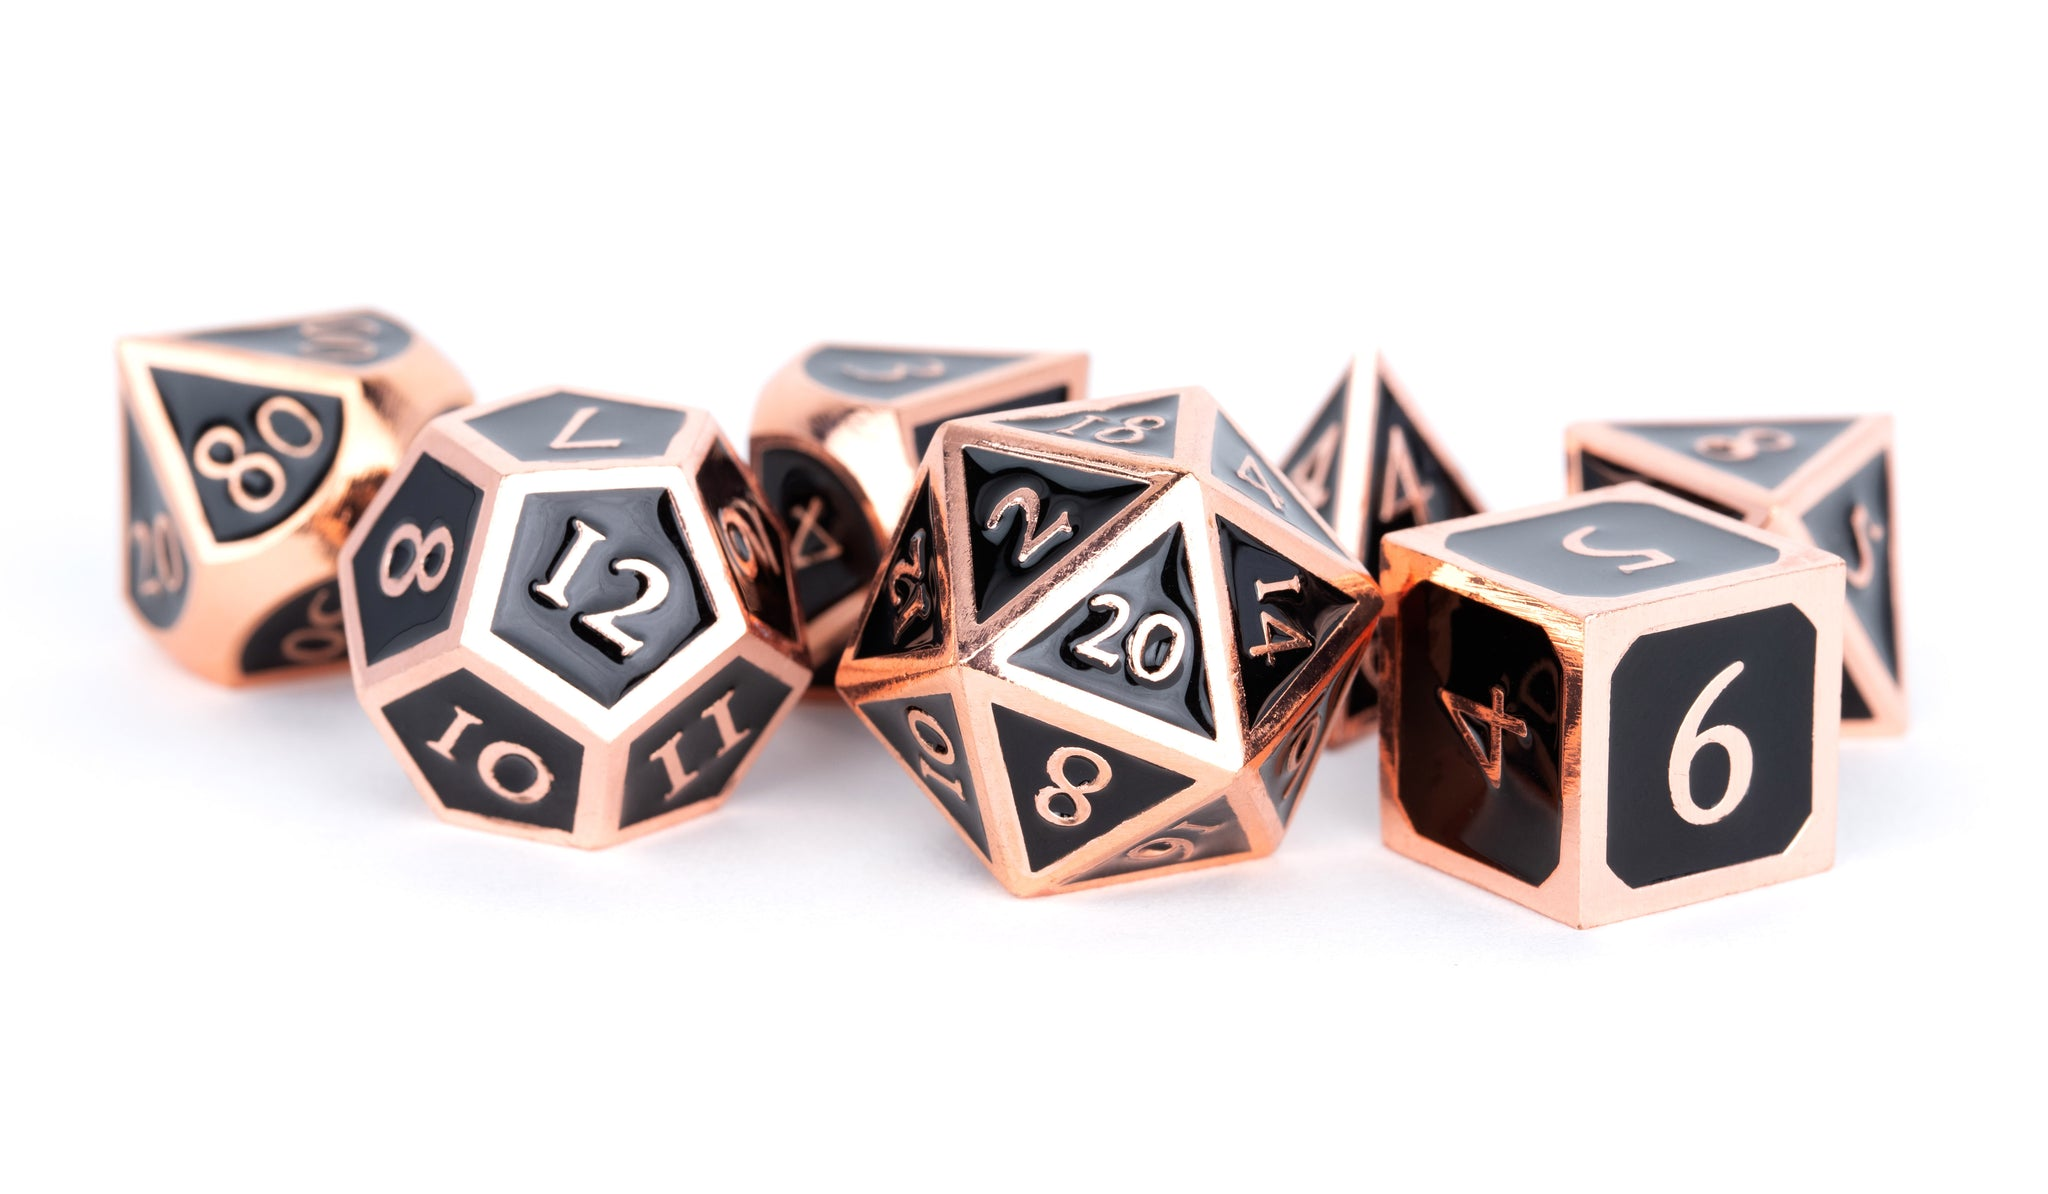 Metal Enamel Dice: Antique Copper with Black Enamel